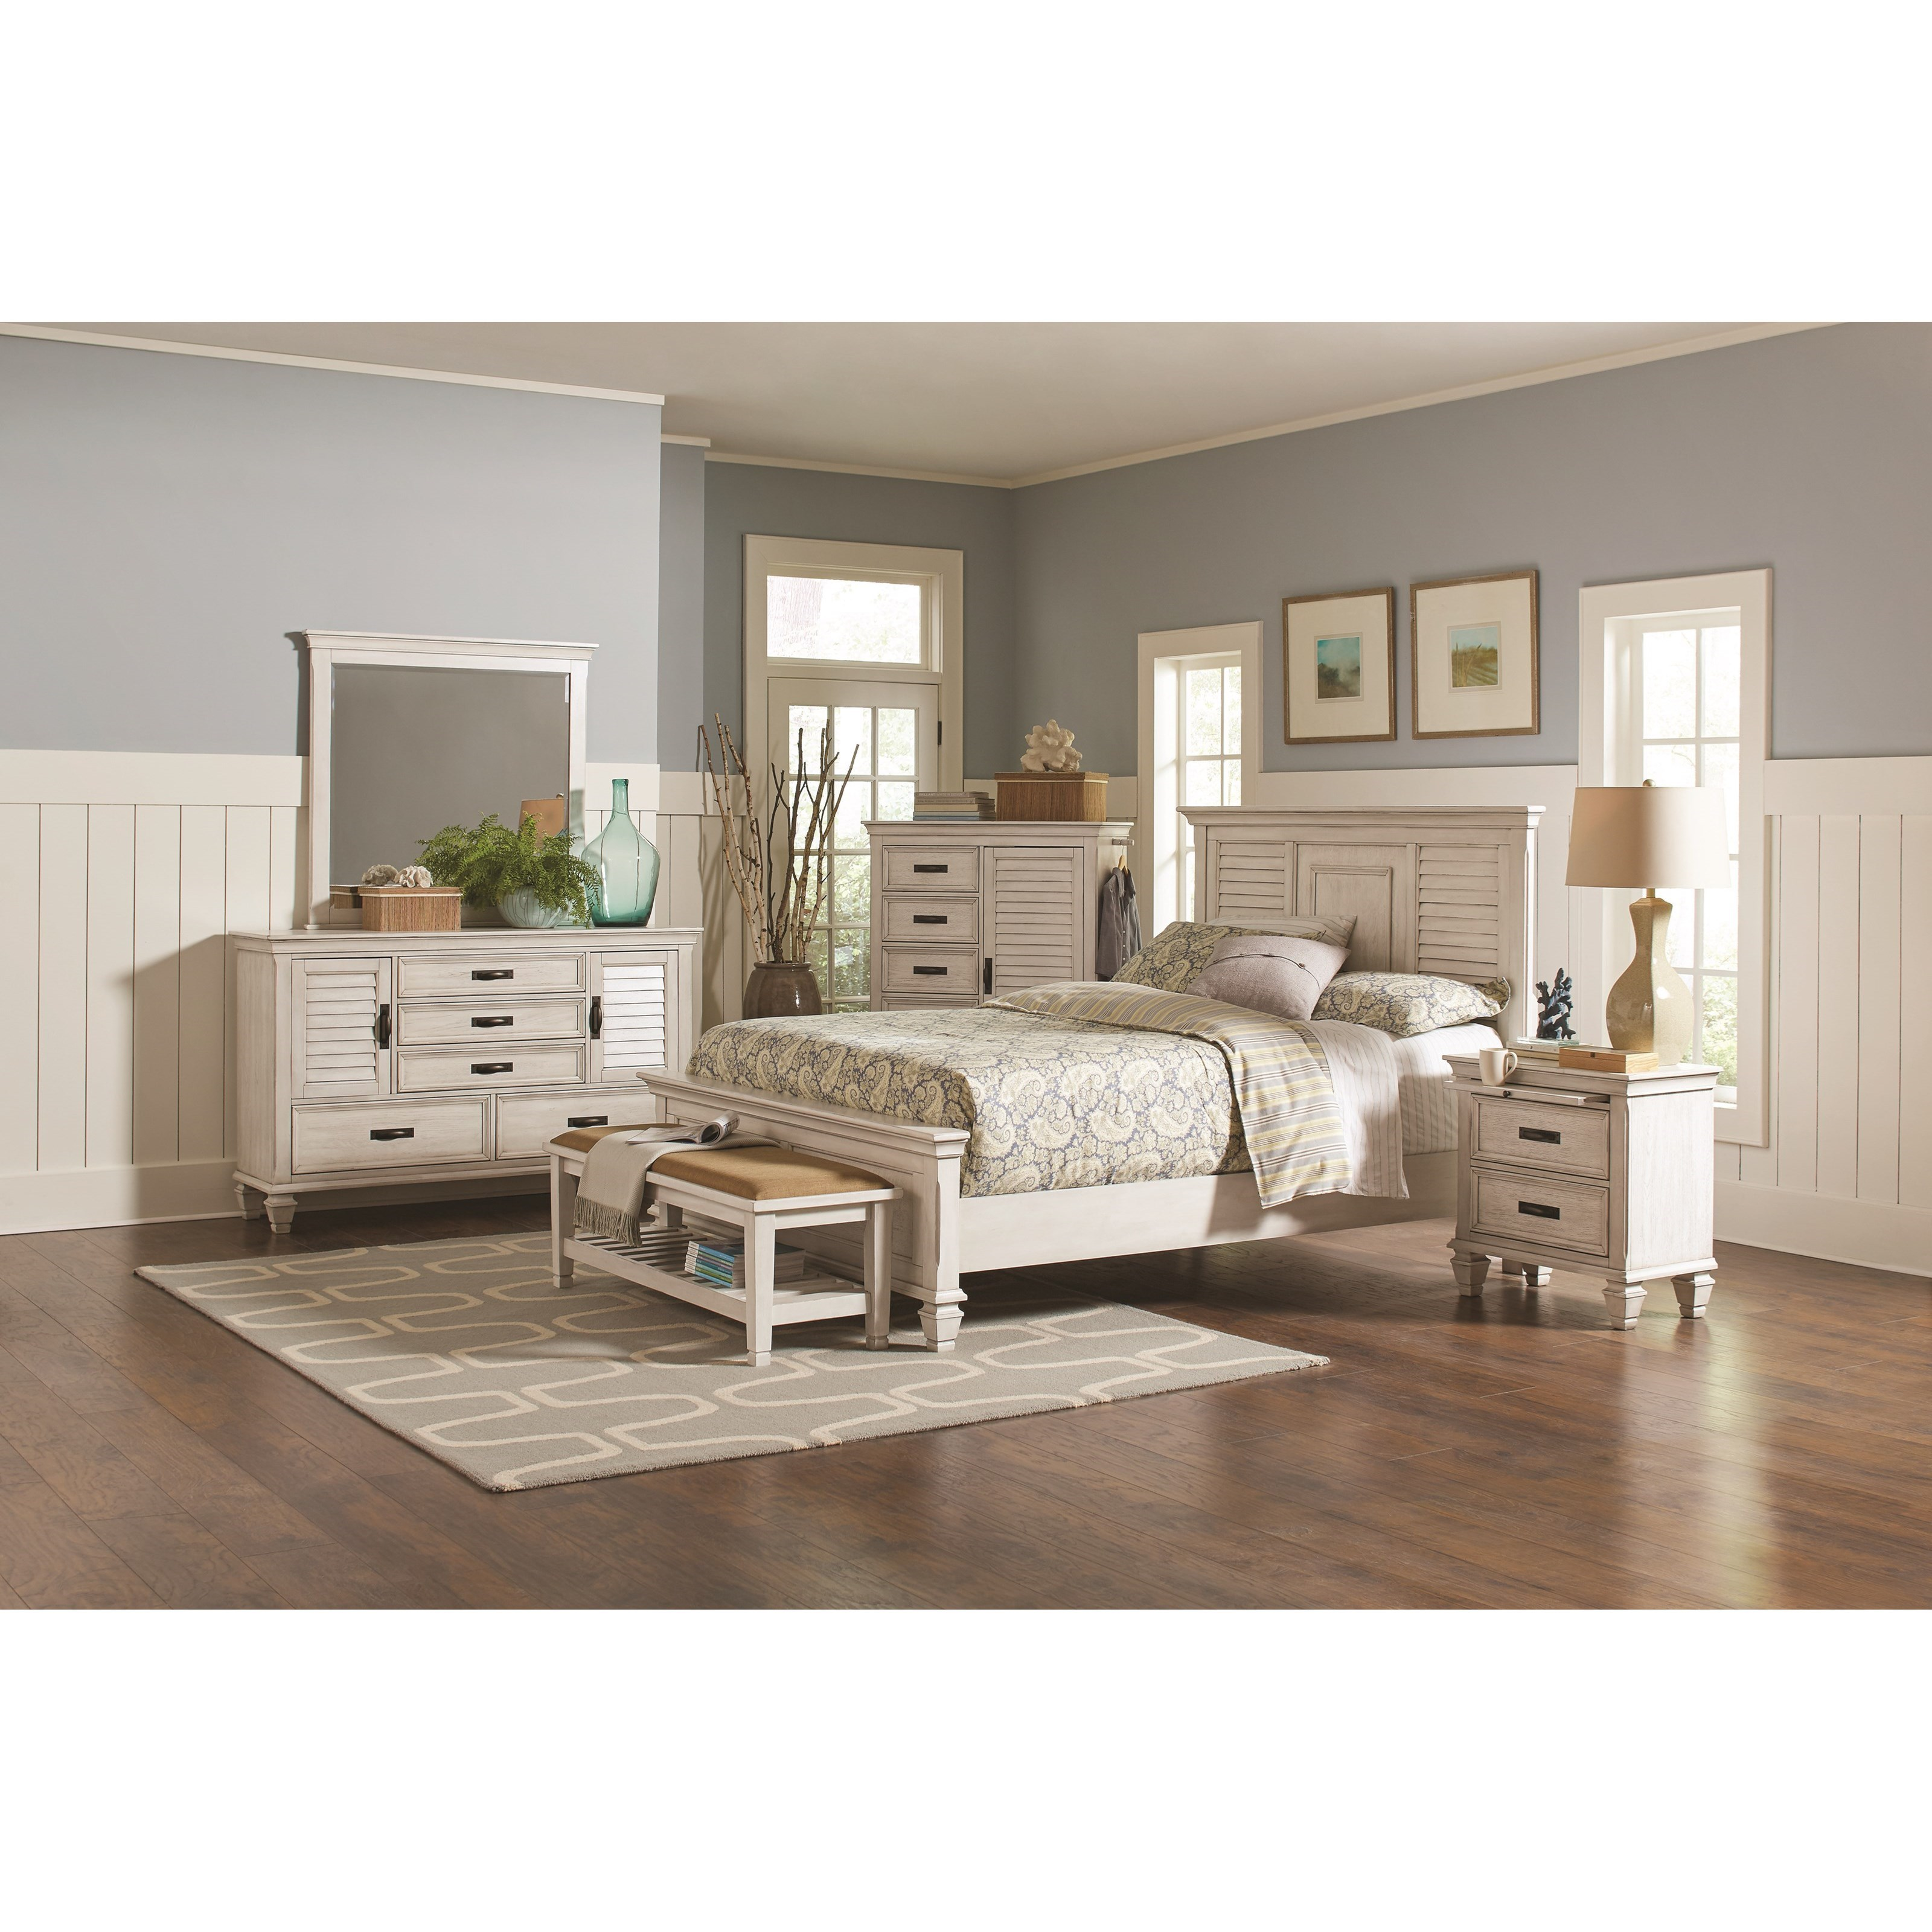 Coaster franco queen bedroom group value city furniture for Bedroom groups